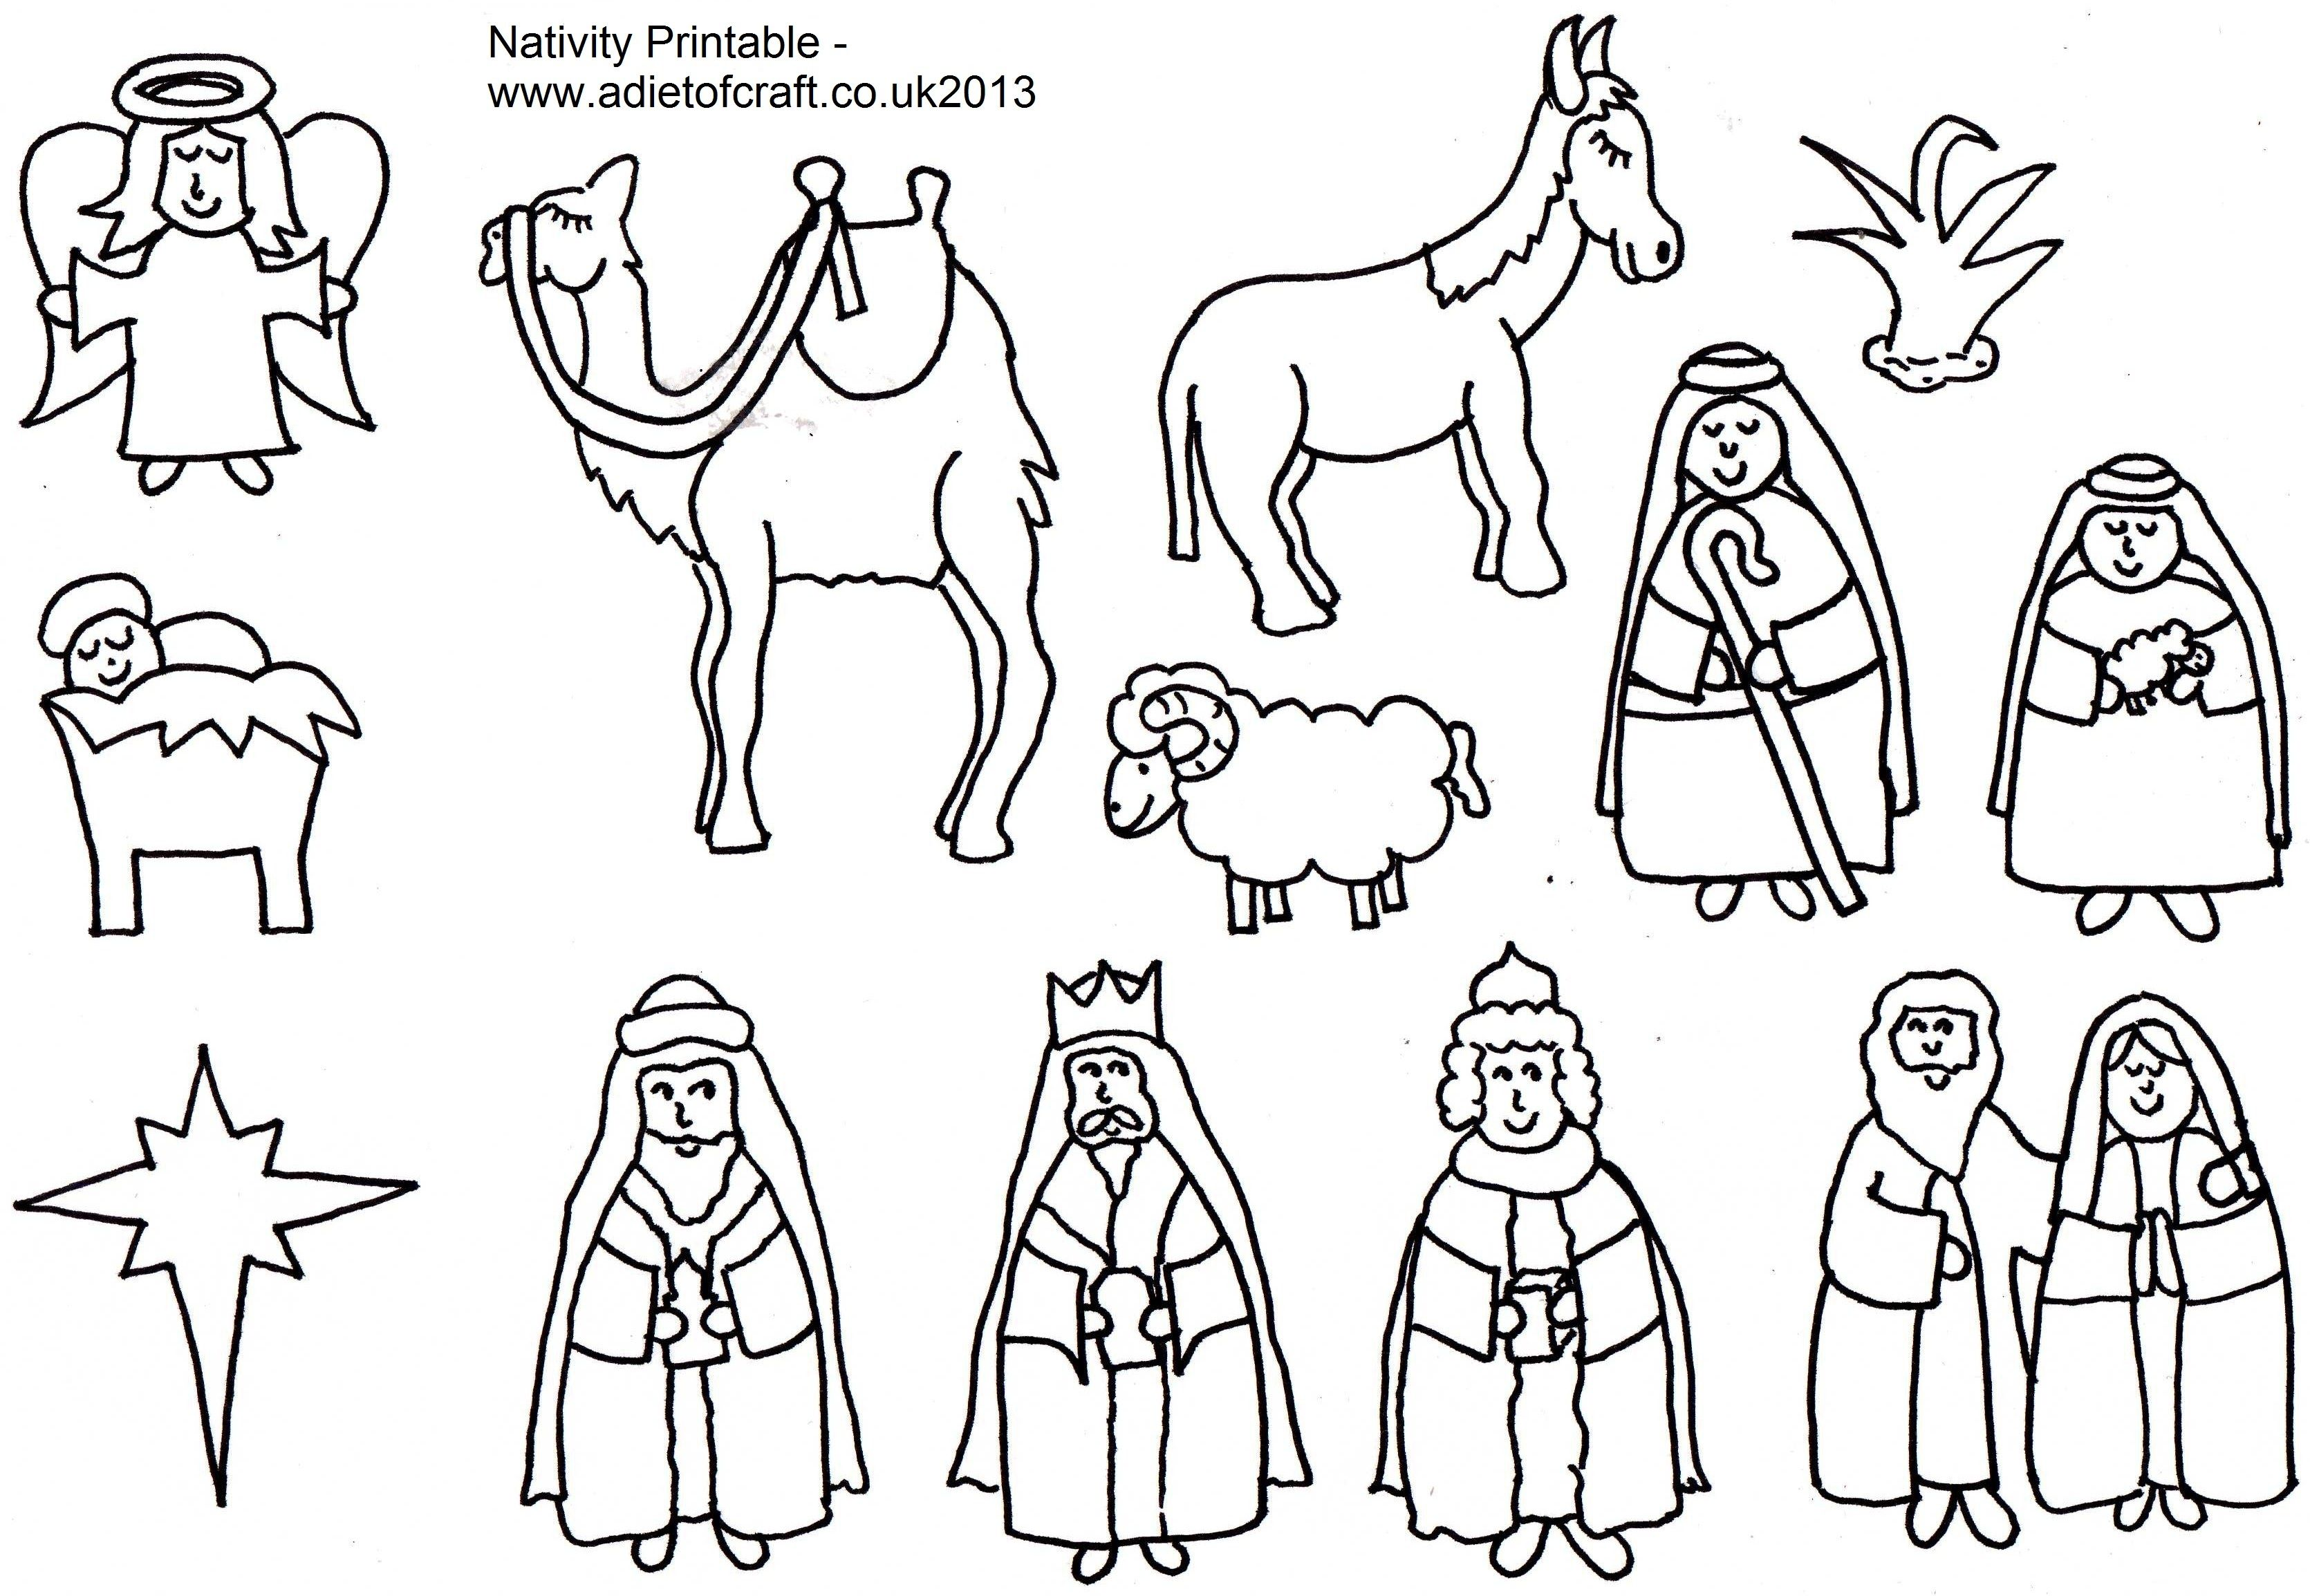 photo relating to Nativity Coloring Pages Printable titled Grownup Coloring Webpages Of The Nativity No cost Within just Nativity